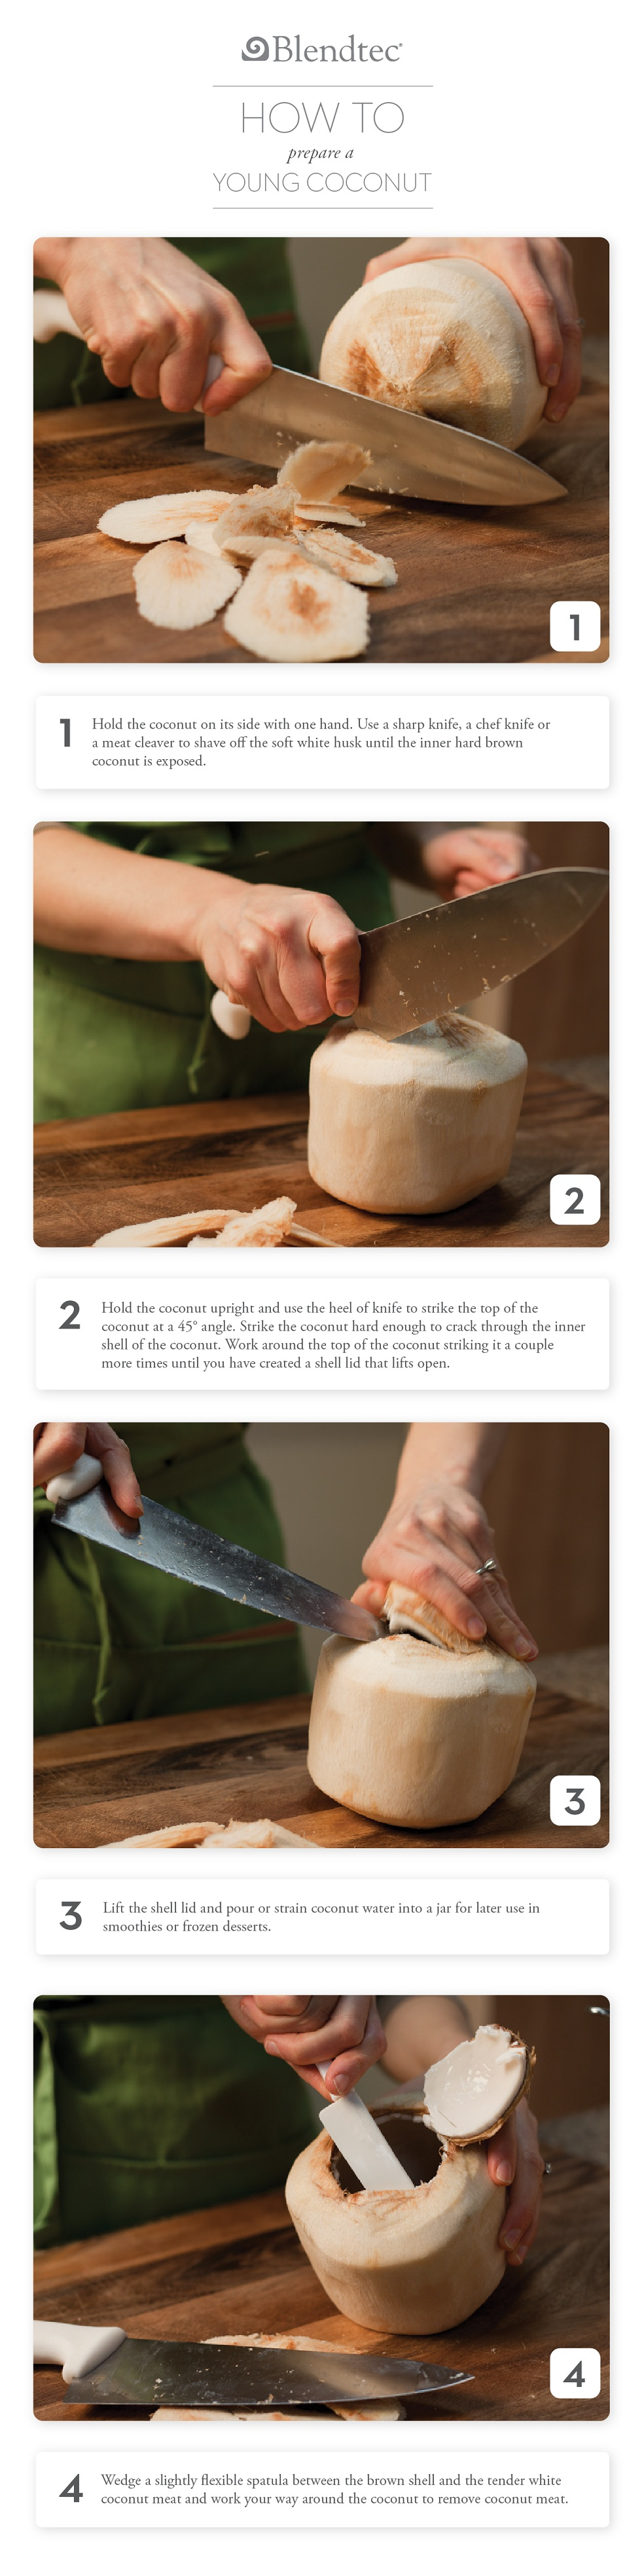 How to Prepare a Coconut